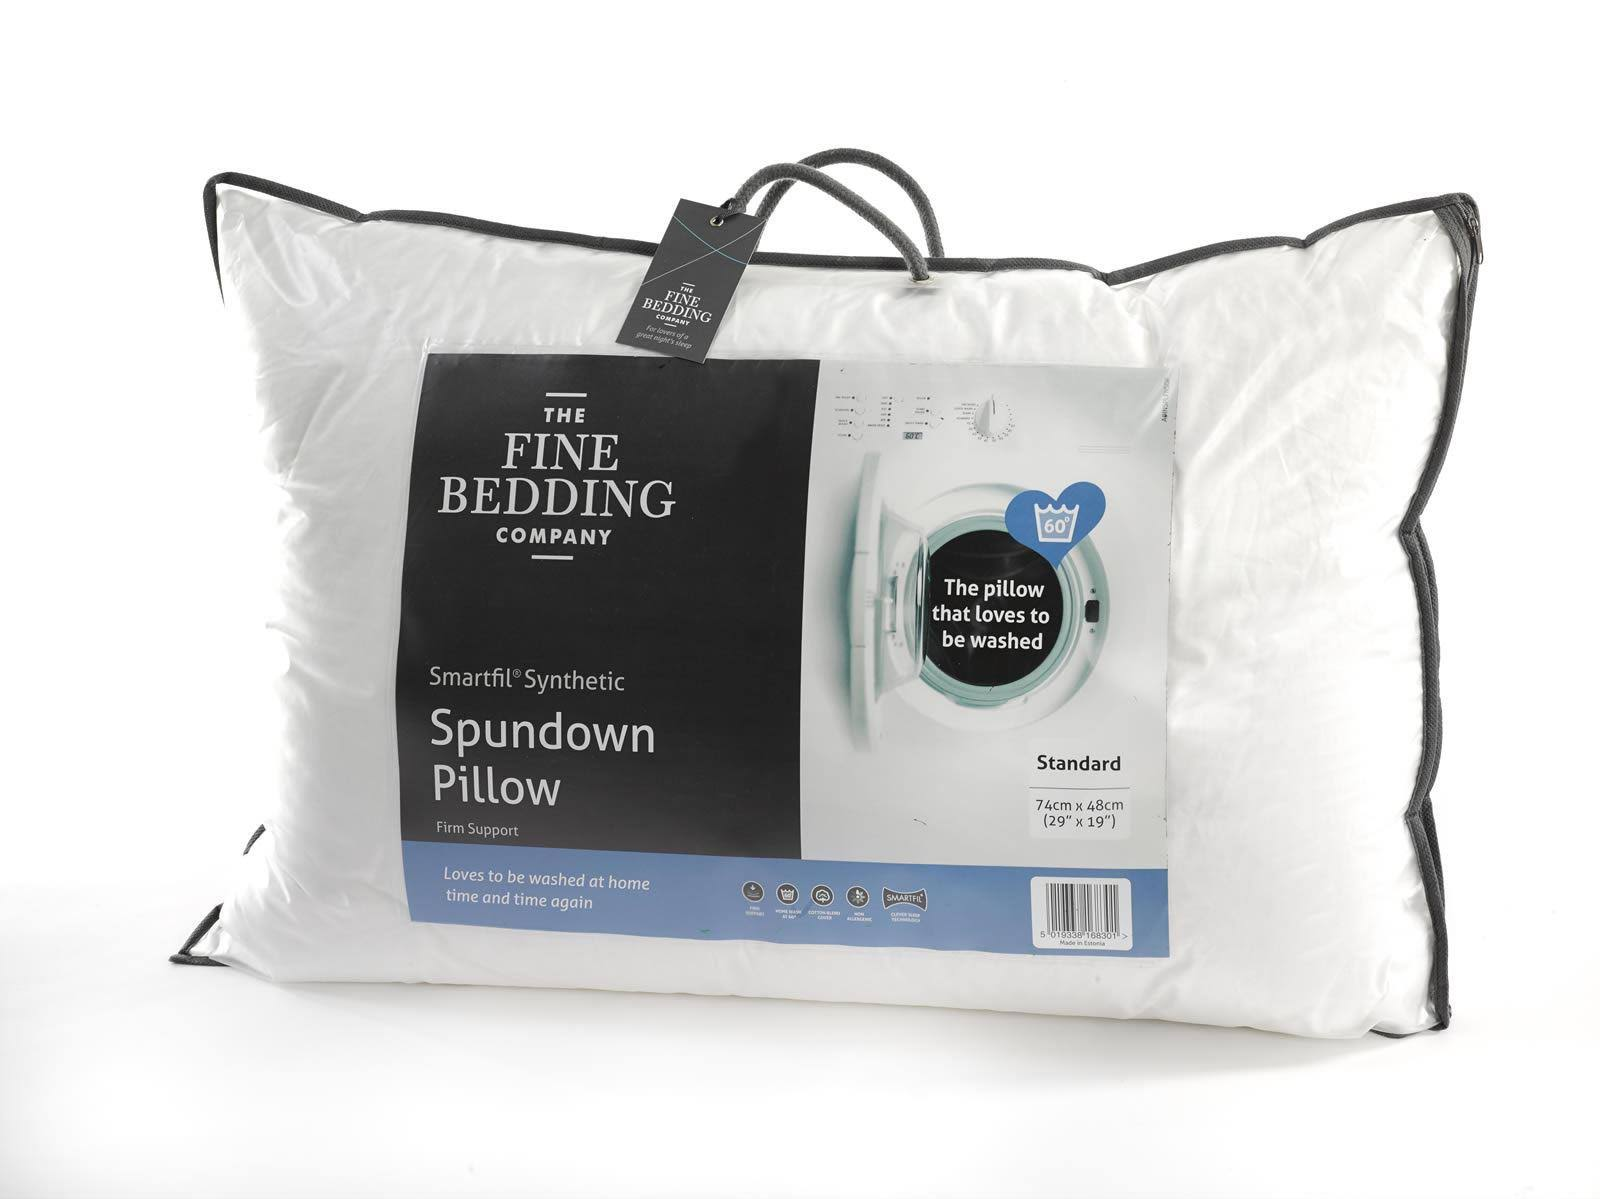 Spundown Pillow - Soft / Medium or Firm support